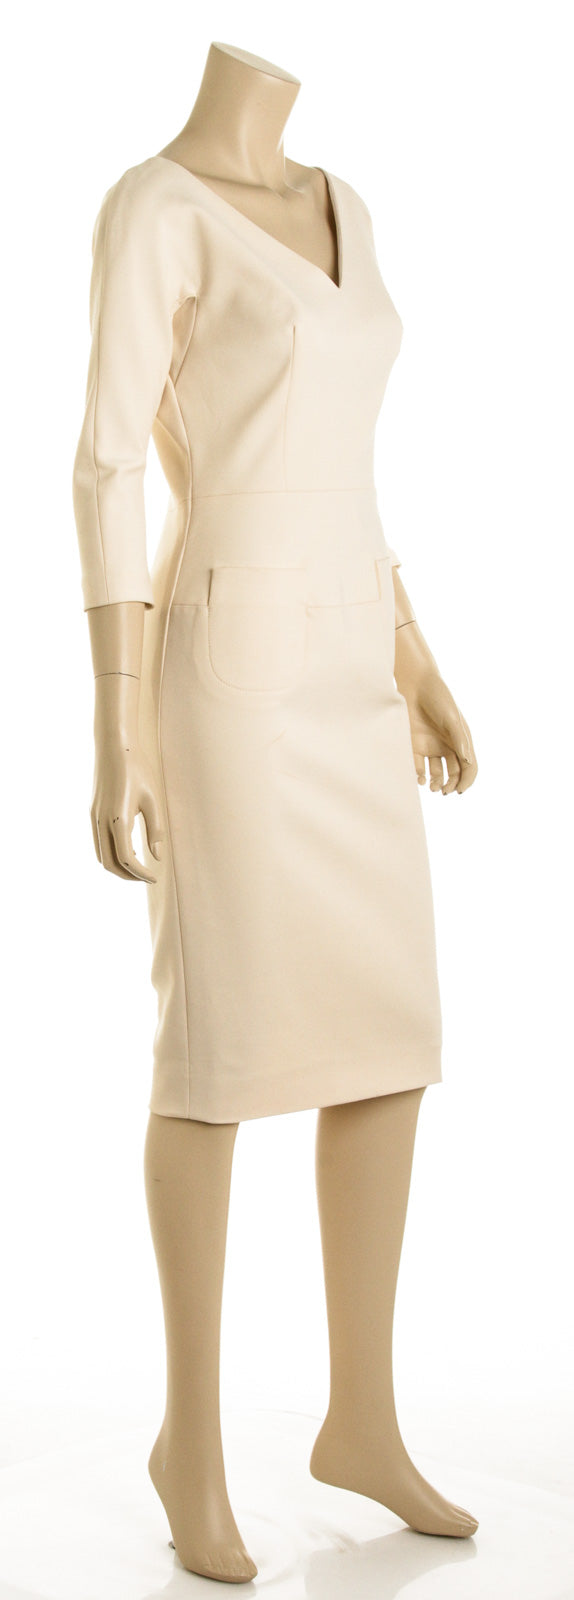 Victoria Beckham Cream Long Sleeve Pencil Dress (Size 10)